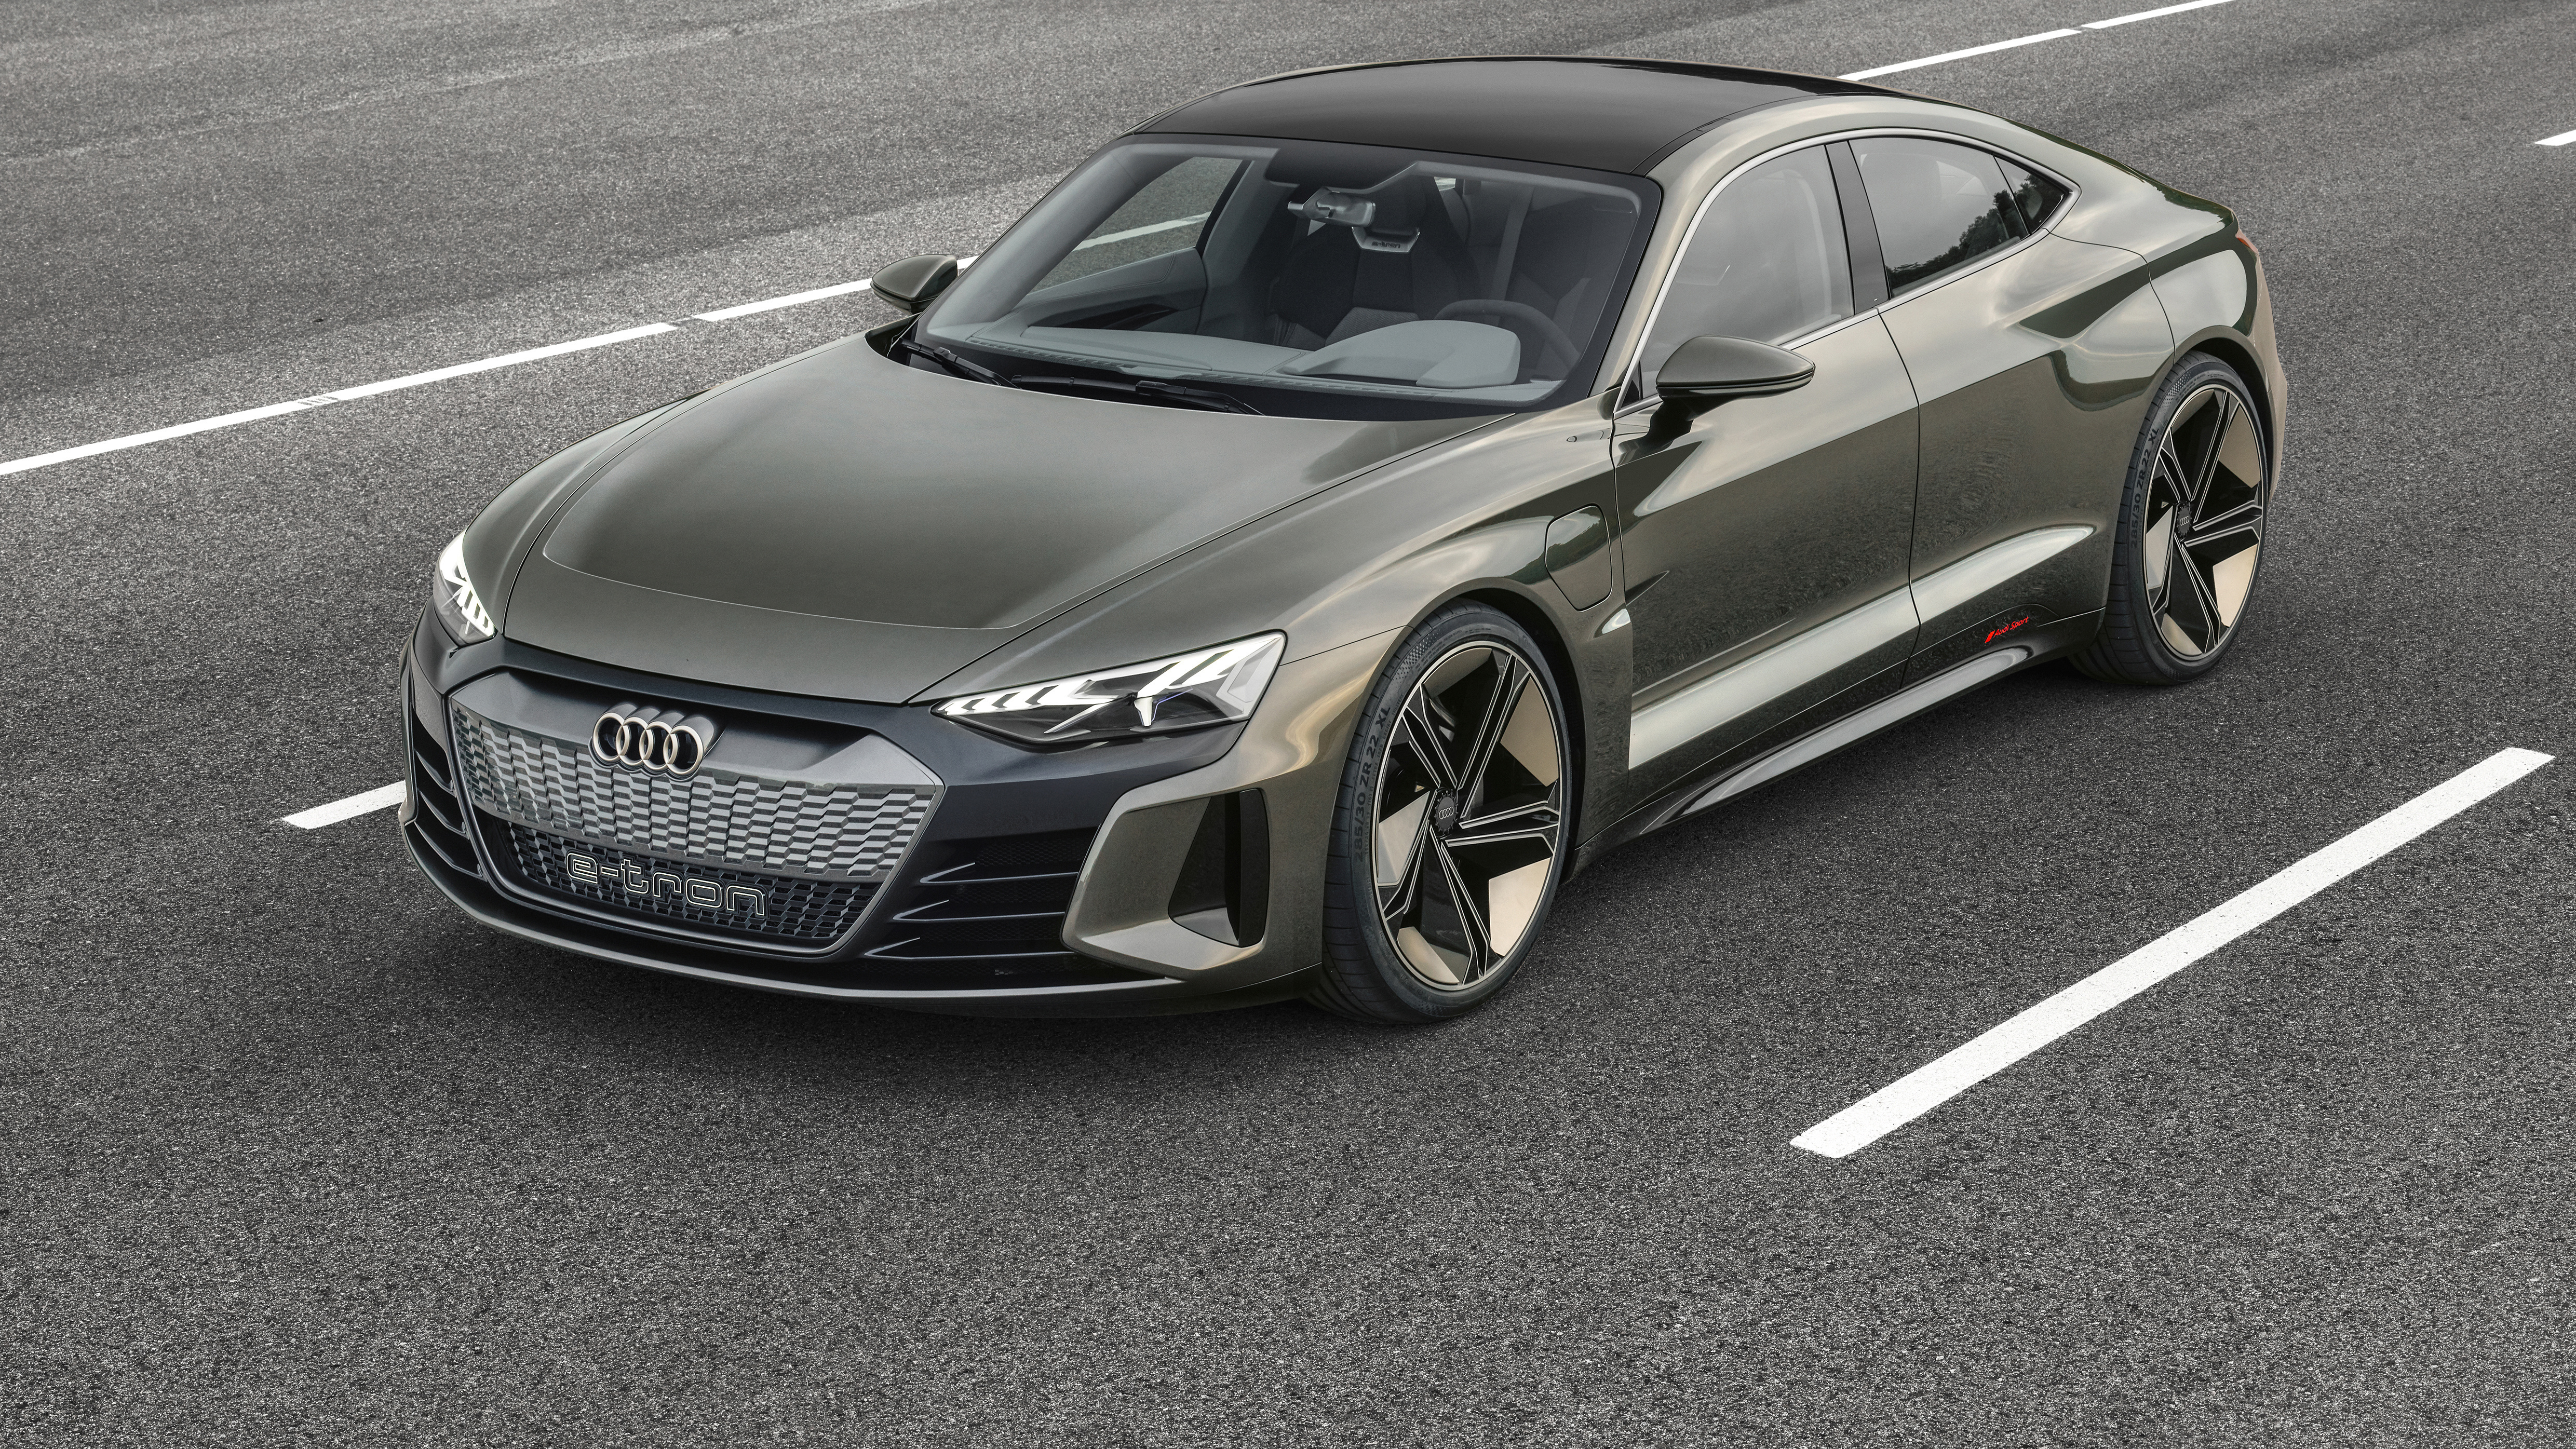 2021 Audi Rs E Tron Gt To Get Three Electric Motors And 520kw Report Caradvice